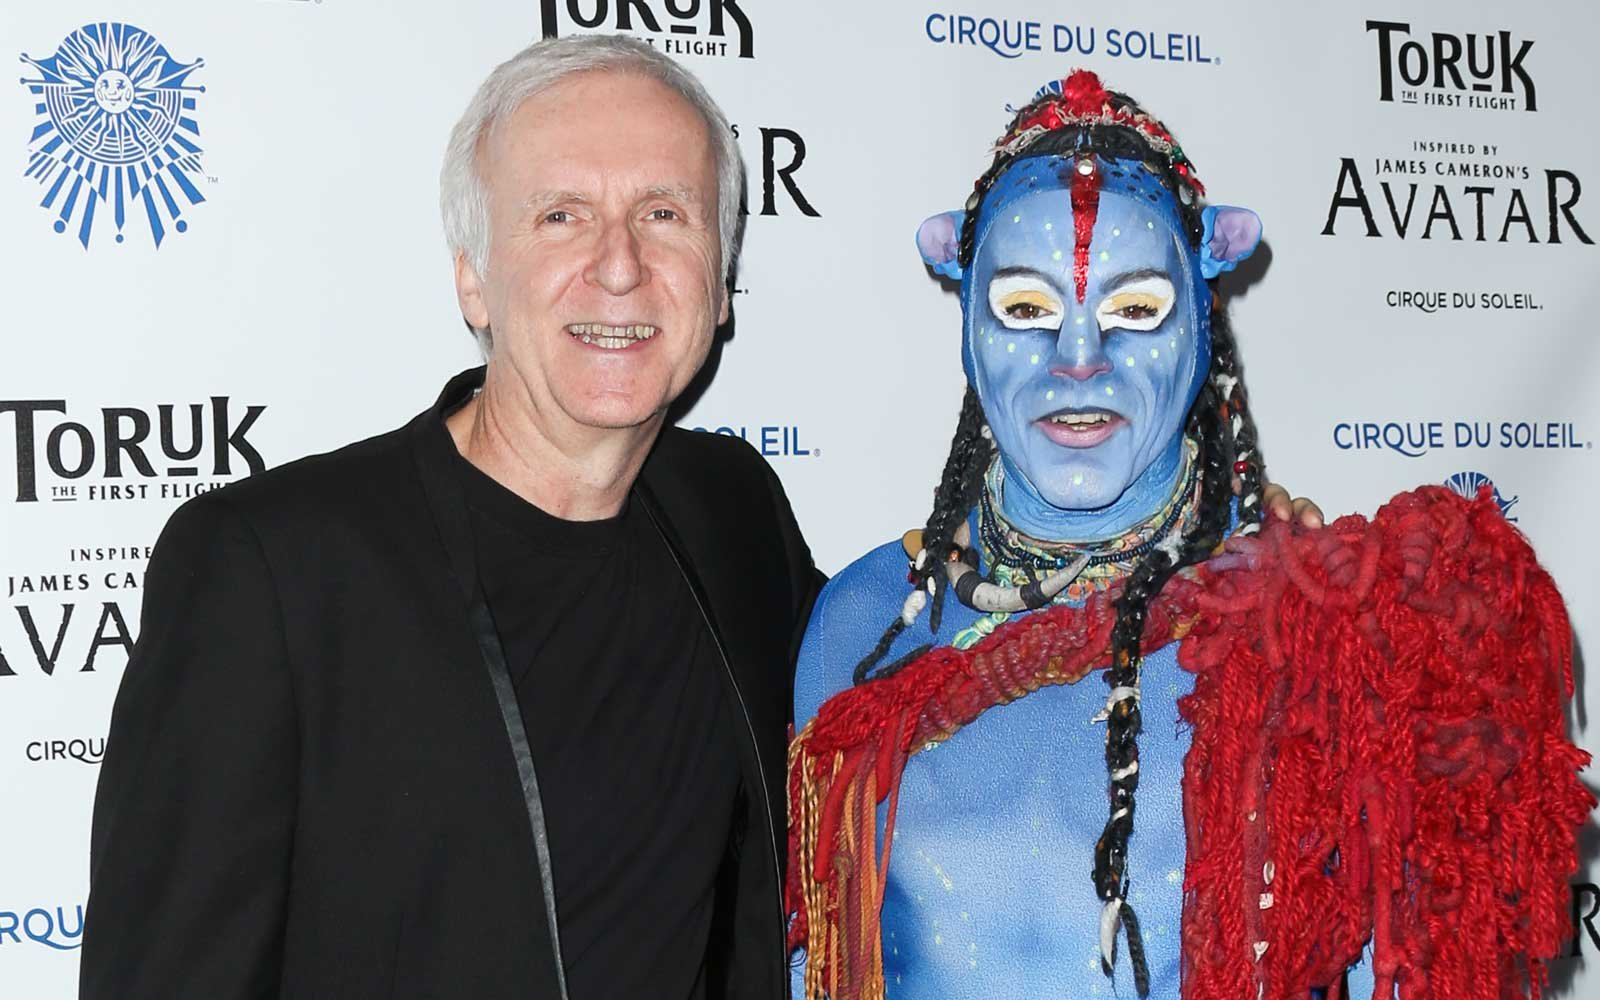 How James Cameron came up with Avatar and Pandora